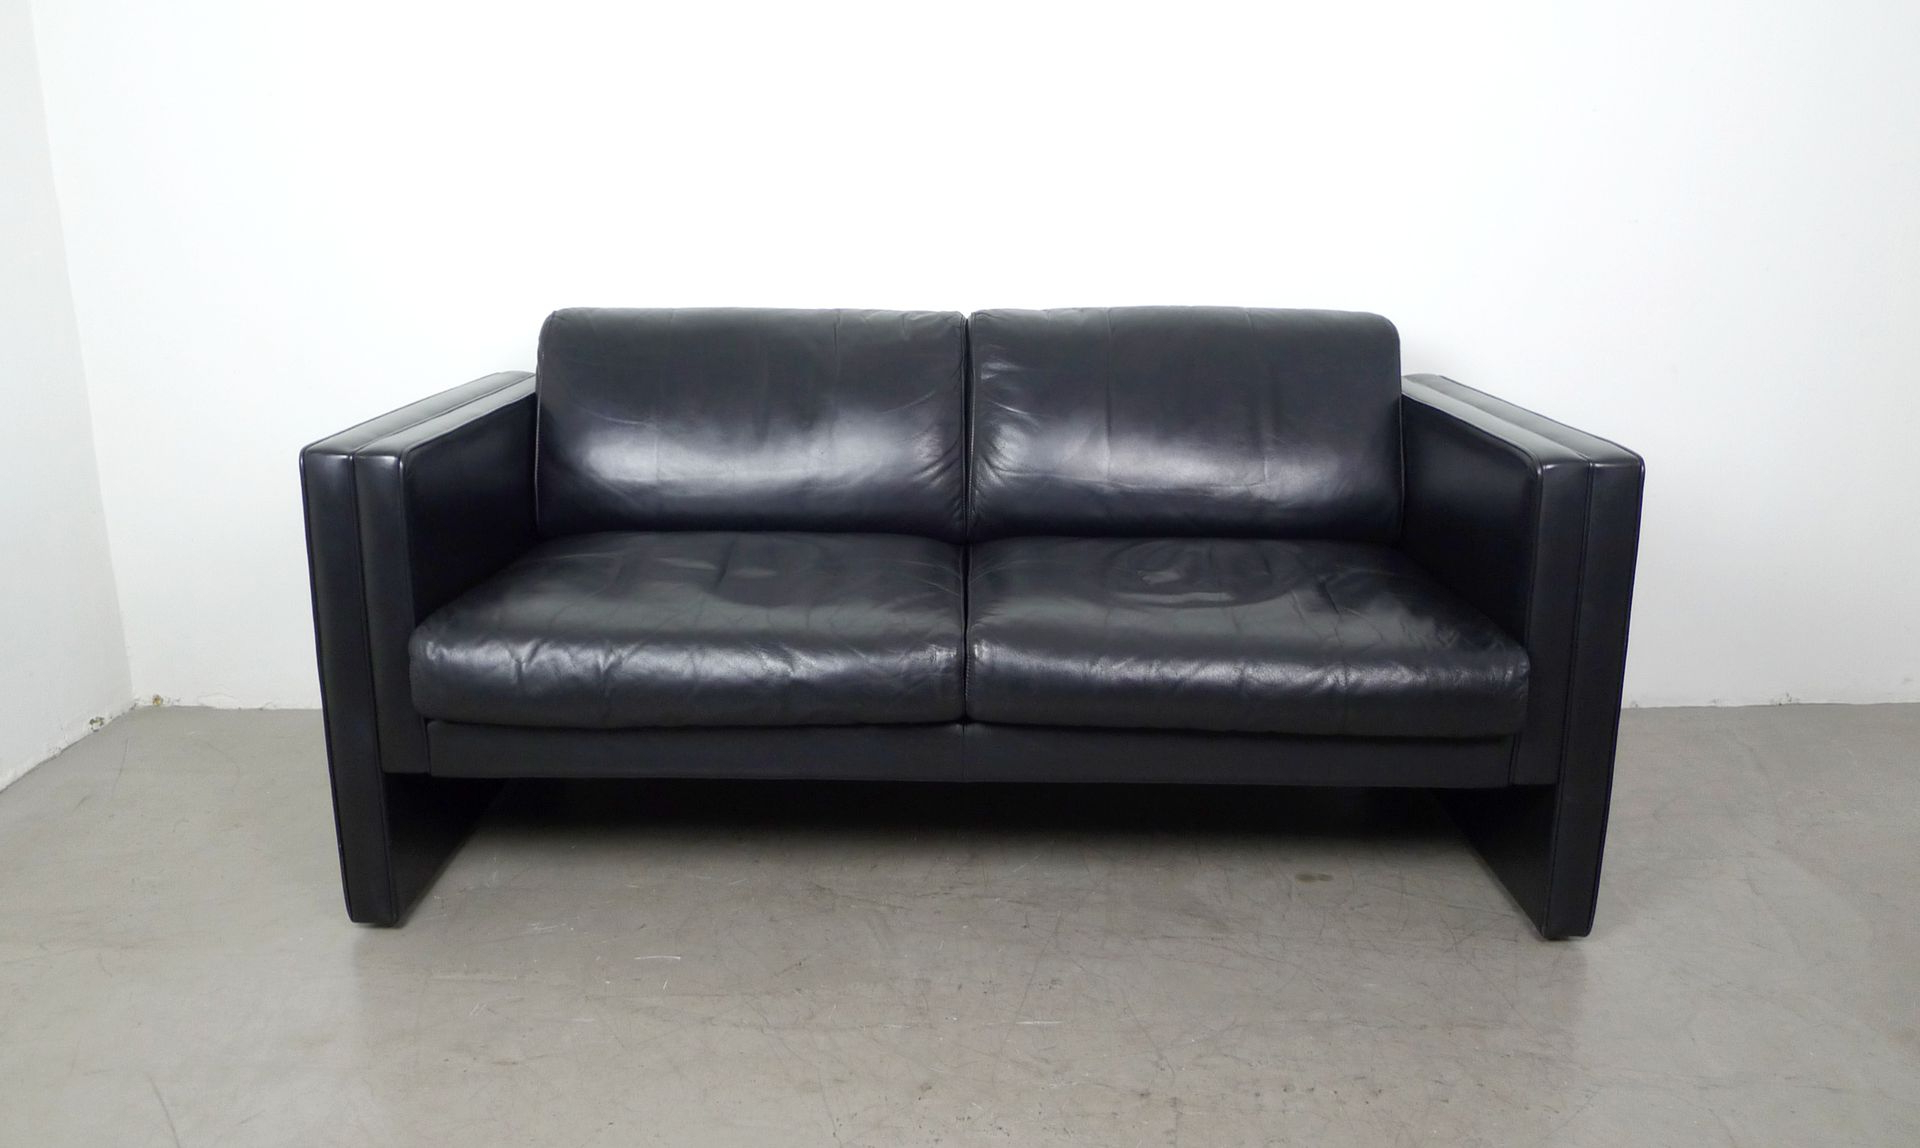 Fashionable Leather Sofajürgen Lange For Walter Knoll, 1980S For Sale At Pamono Throughout Walter Leather Sofa Chairs (View 2 of 20)